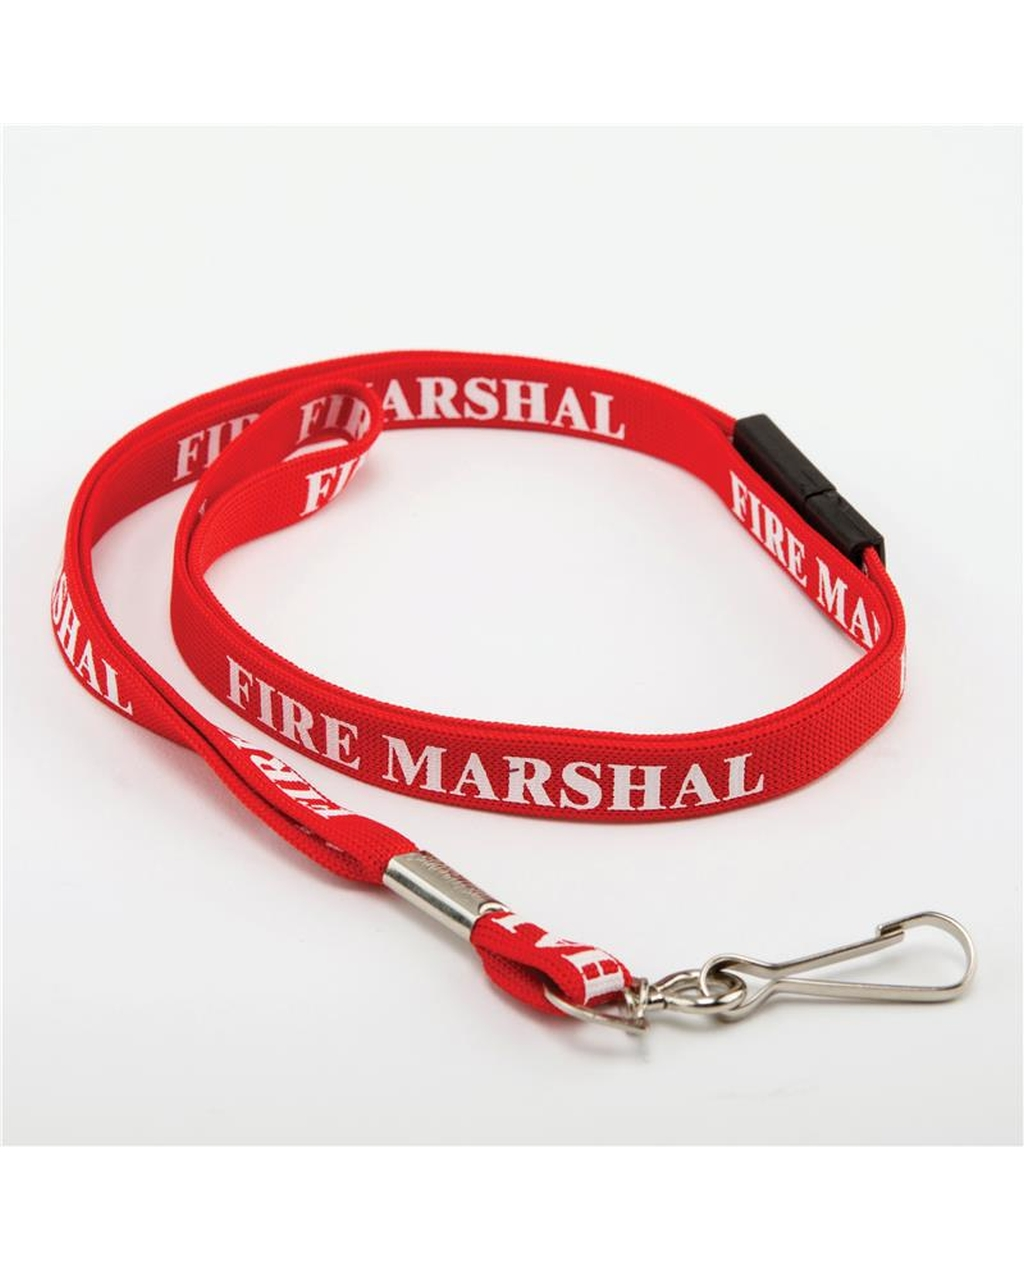 10 Printed Breakaway Lanyard - FIRE MARSHAL